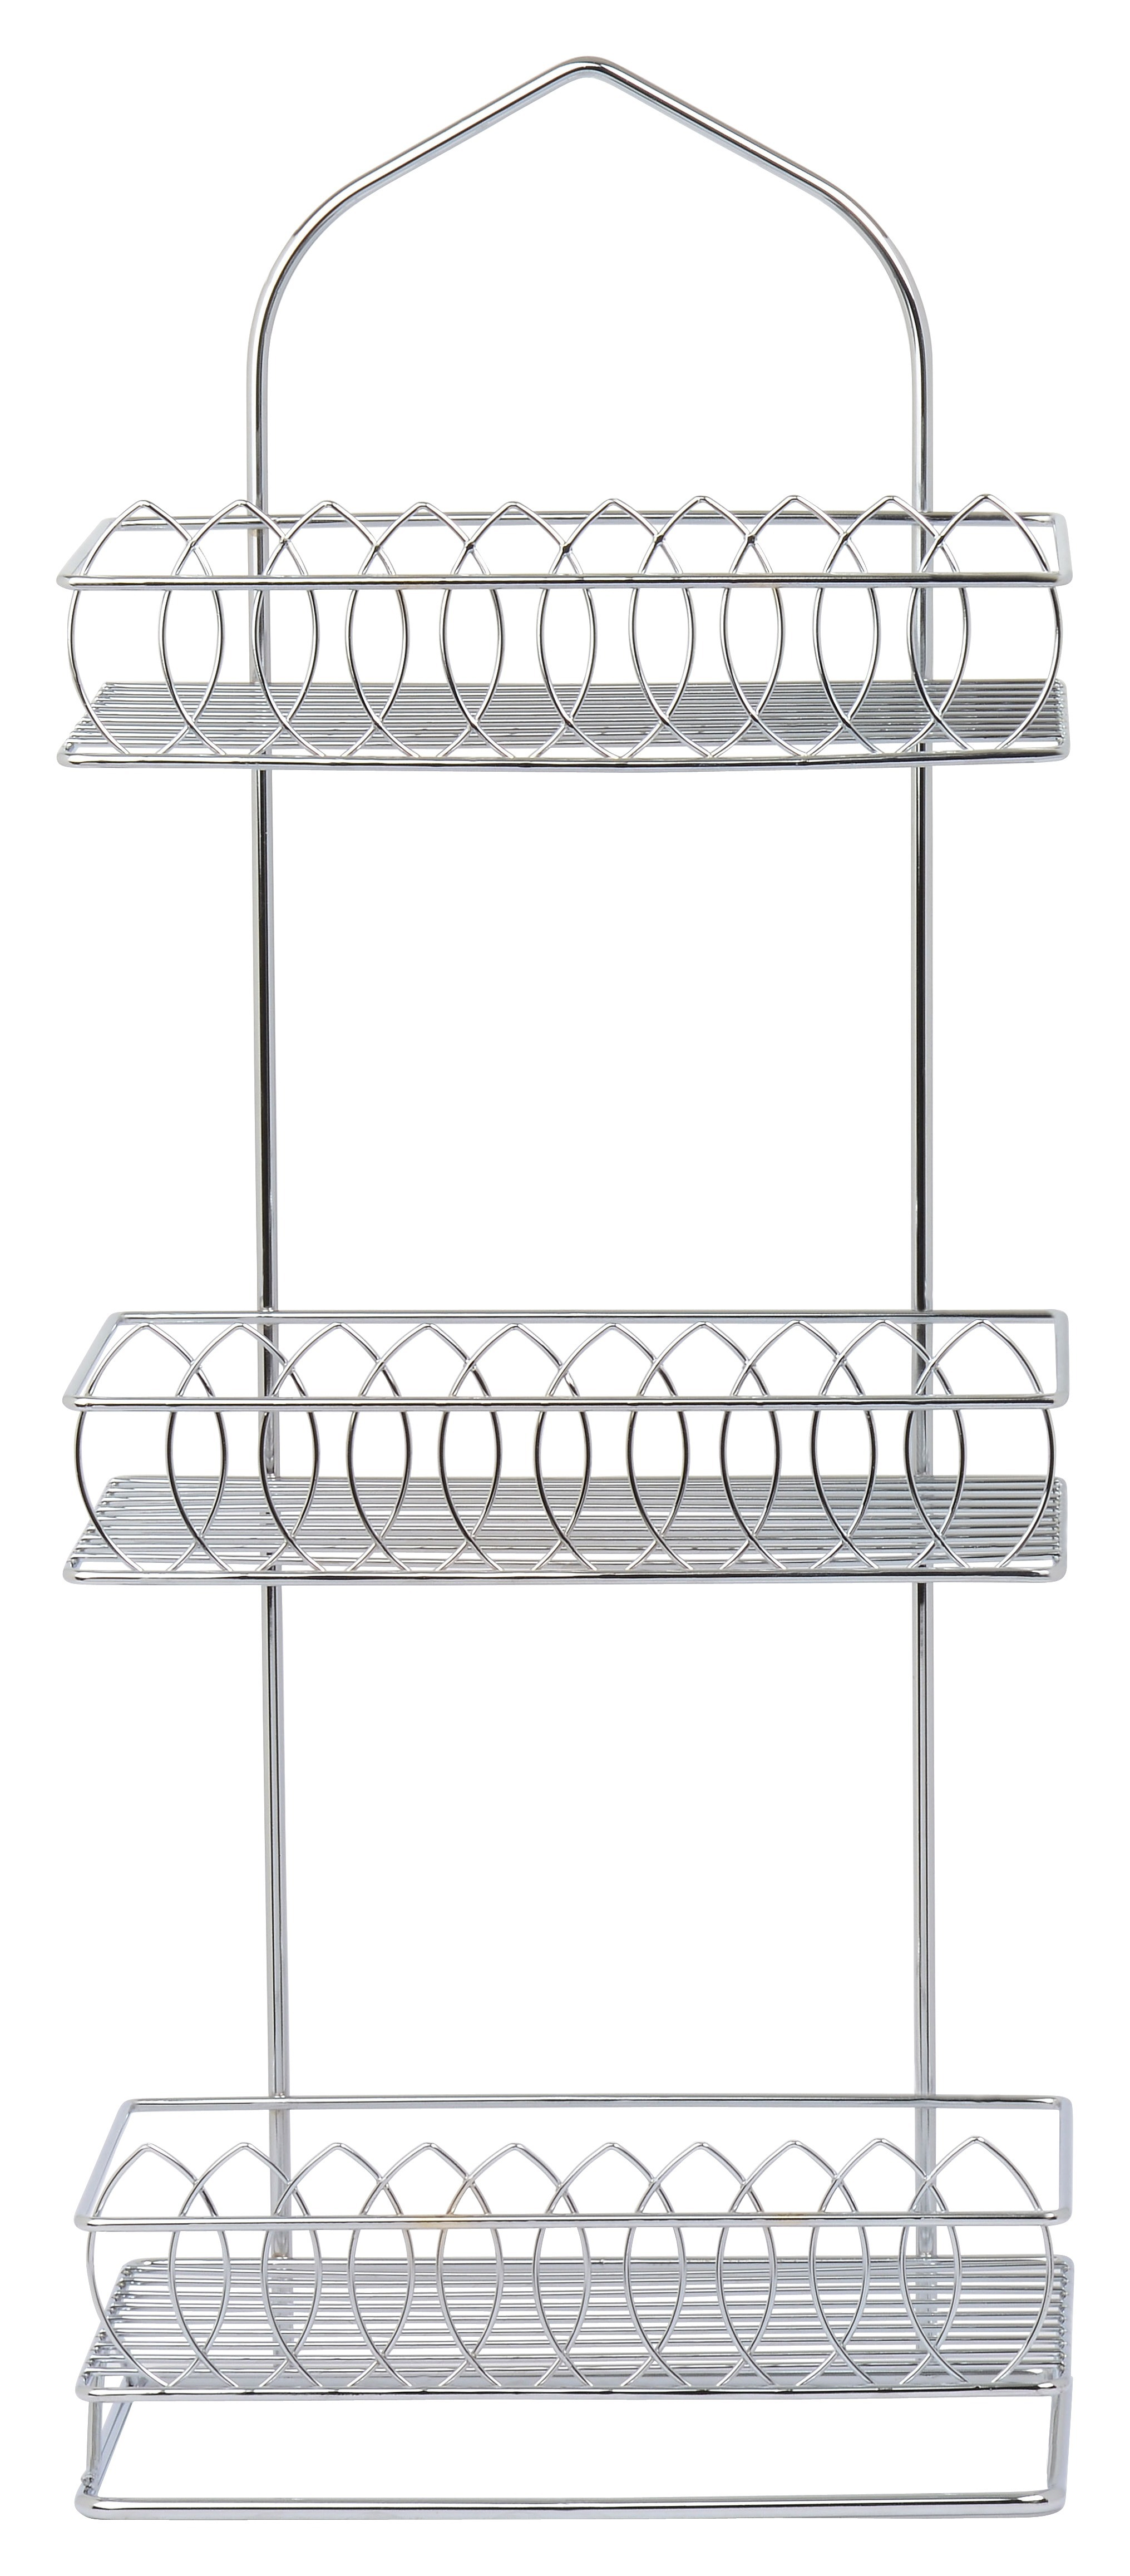 3 Tier Stand - High Quality Stainless Steel with Shiny Chrome Polish